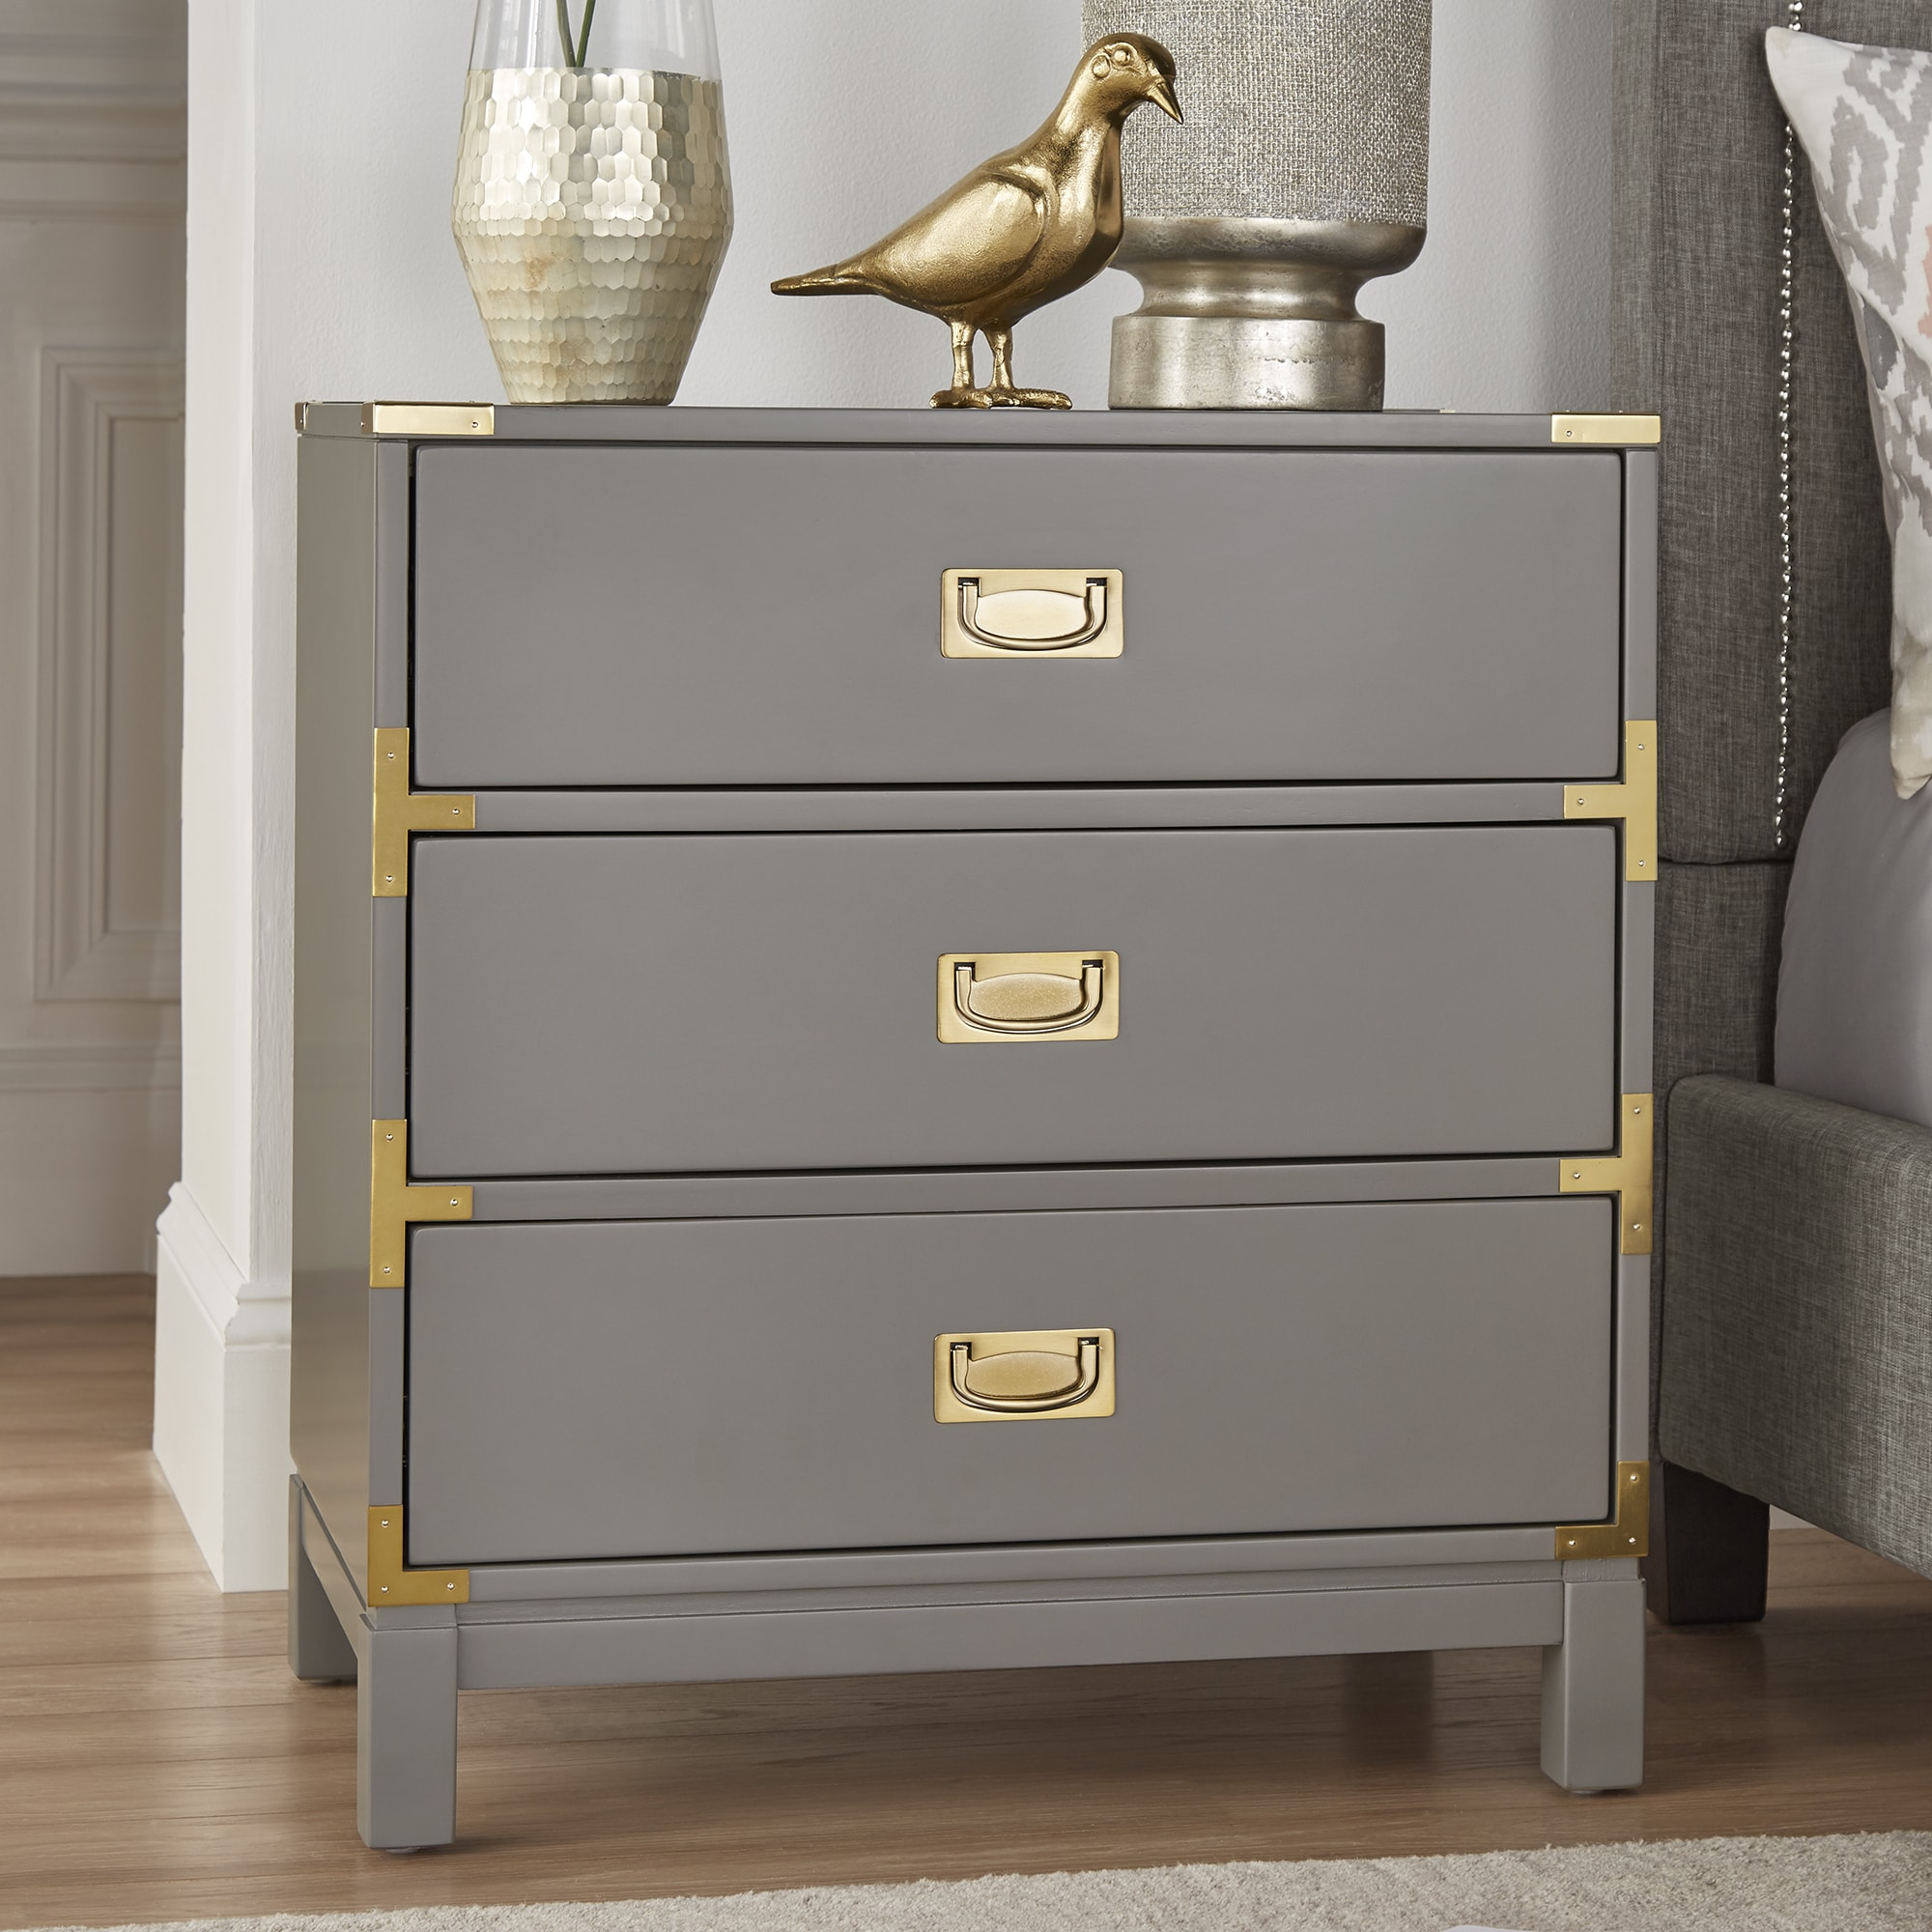 Kedric 3-Drawer Gold Accent End Table Nightstand by iNSPIRE Q Bold - Free  Shipping Today - Overstock.com - 23109784